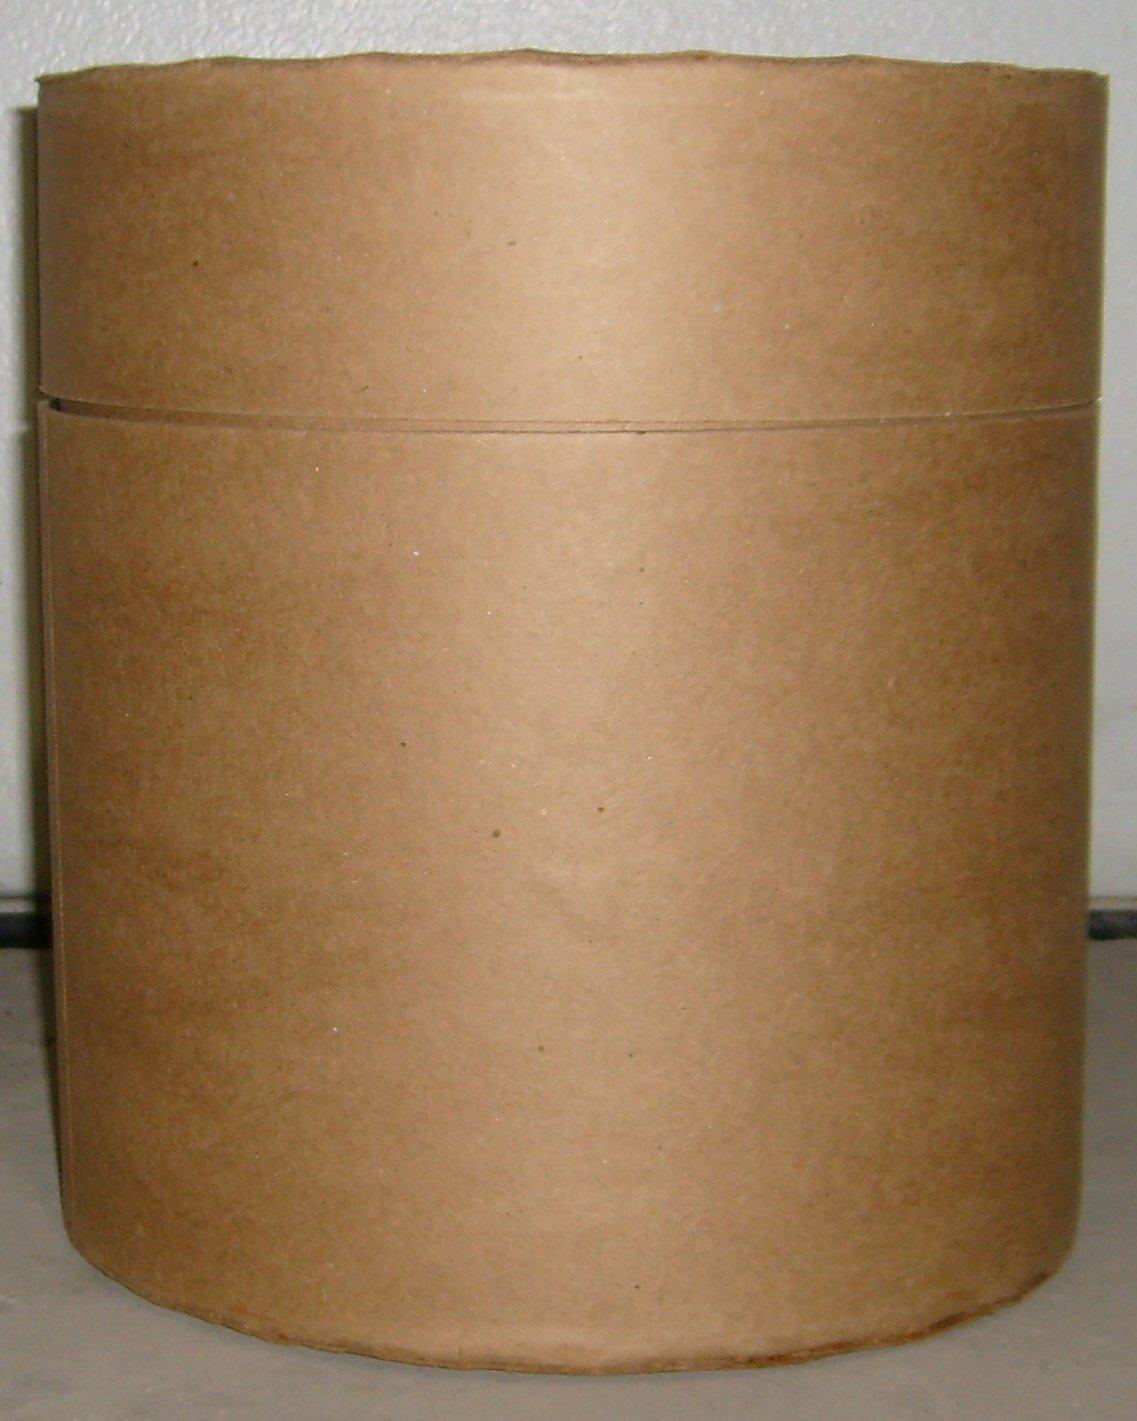 5 Gallon, Open Head All-Fiber Drum